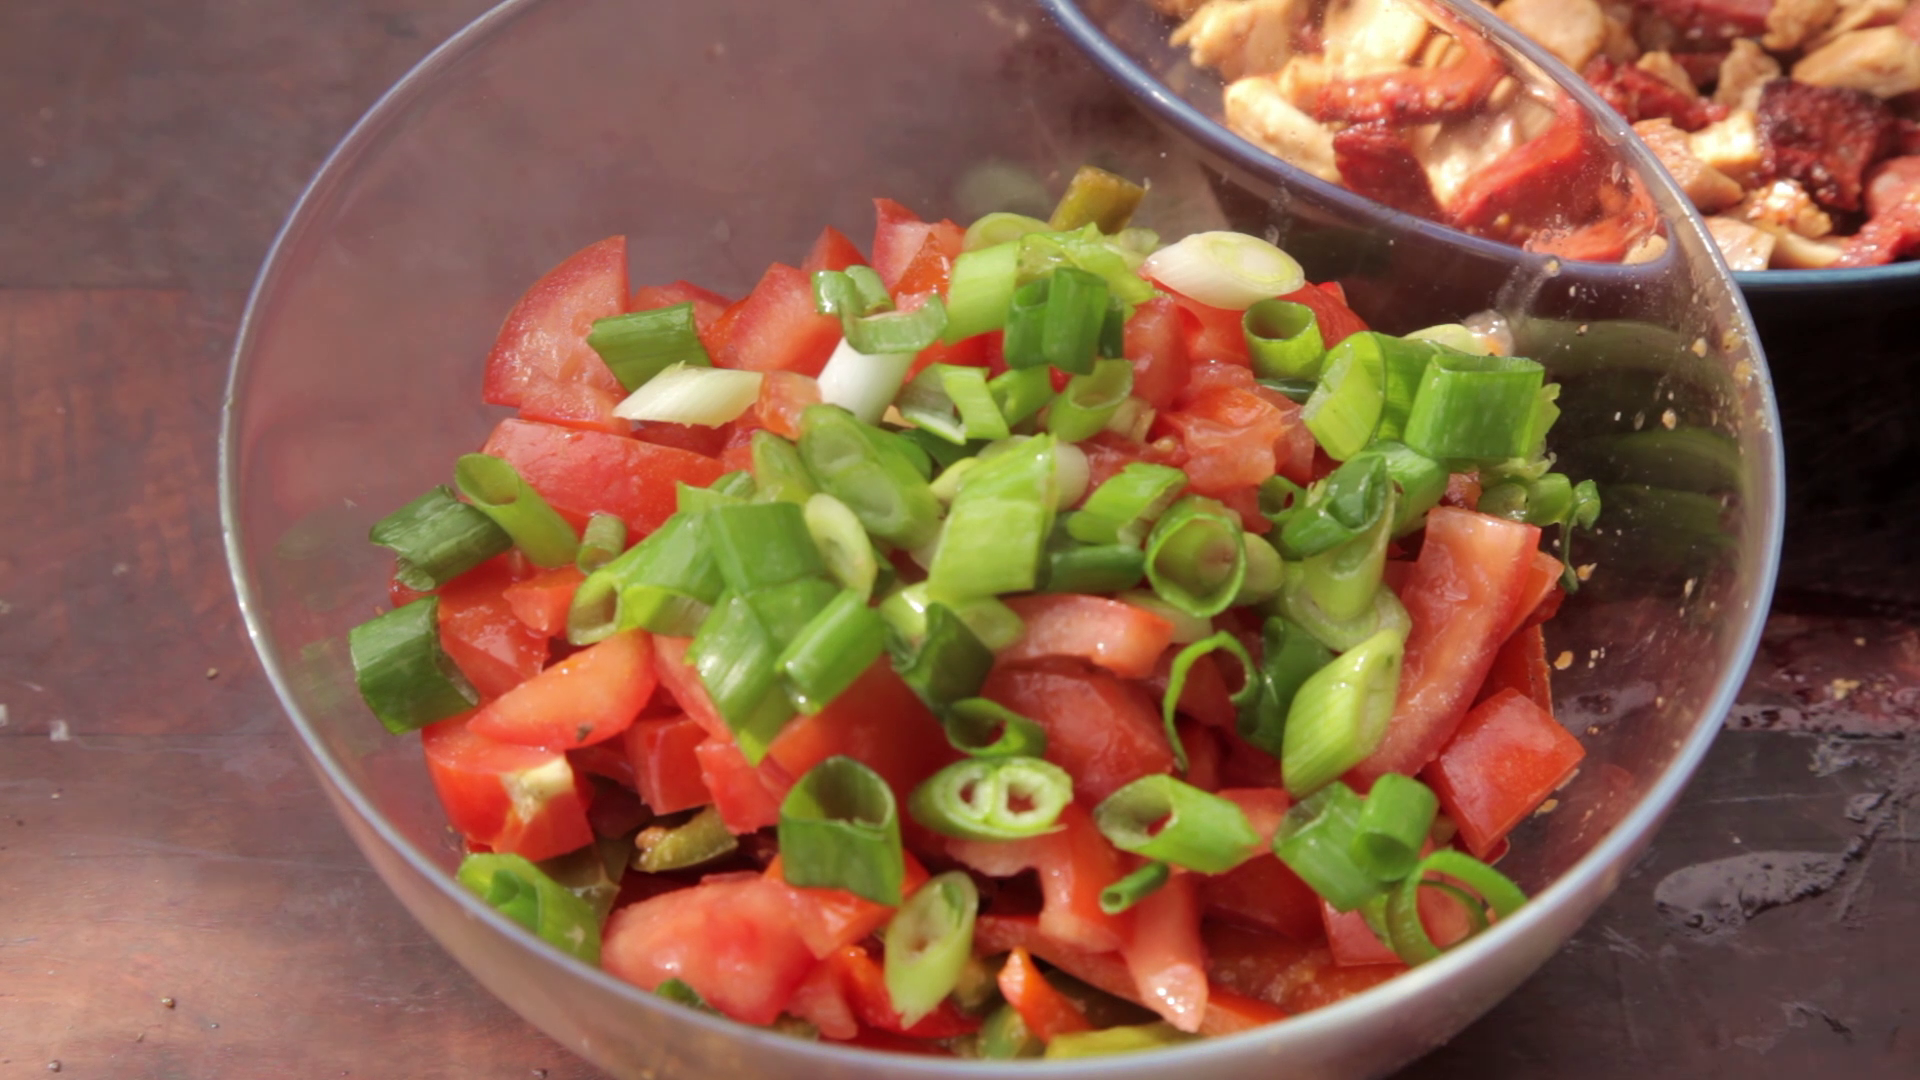 Picture of The Onions and Capsicums Have Cooled, Add the Diced Tomato to the Bowl Along With the Spring Onion.